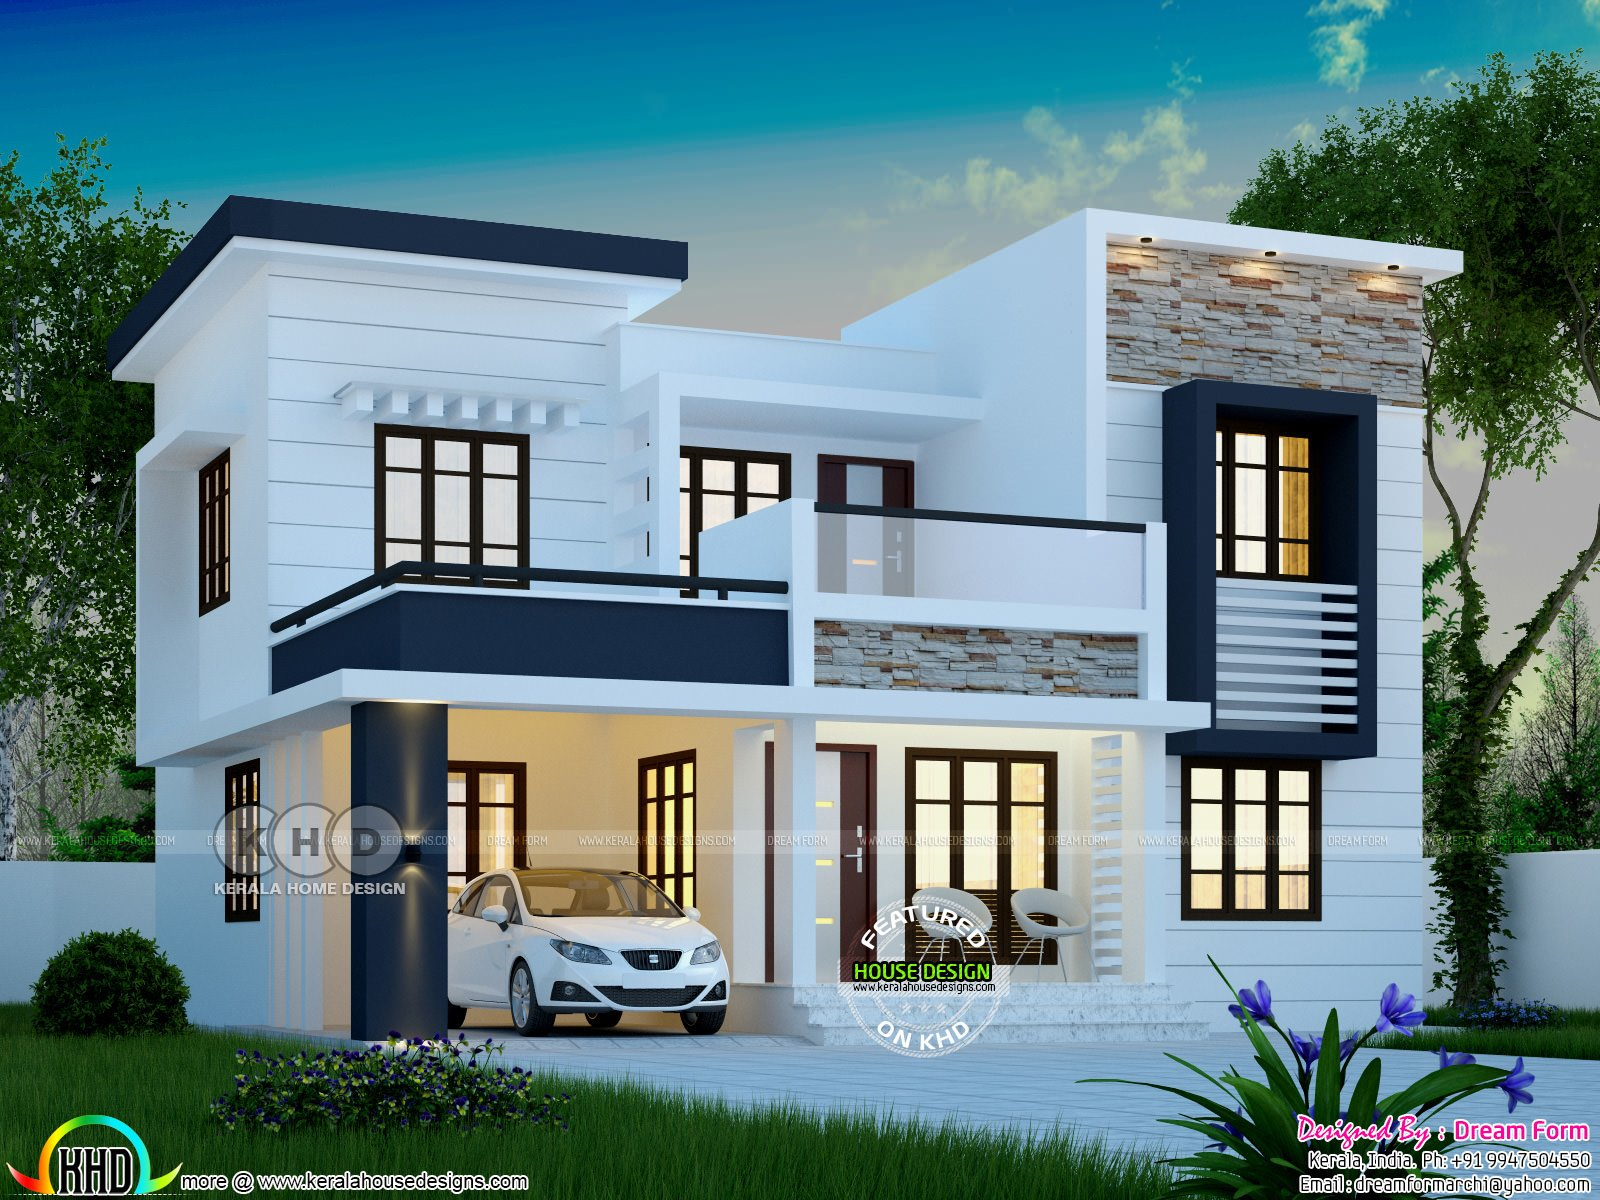 Best 1748 Square Feet Modern 4 Bedroom House Plan Kerala Home Design Bloglovin' With Pictures